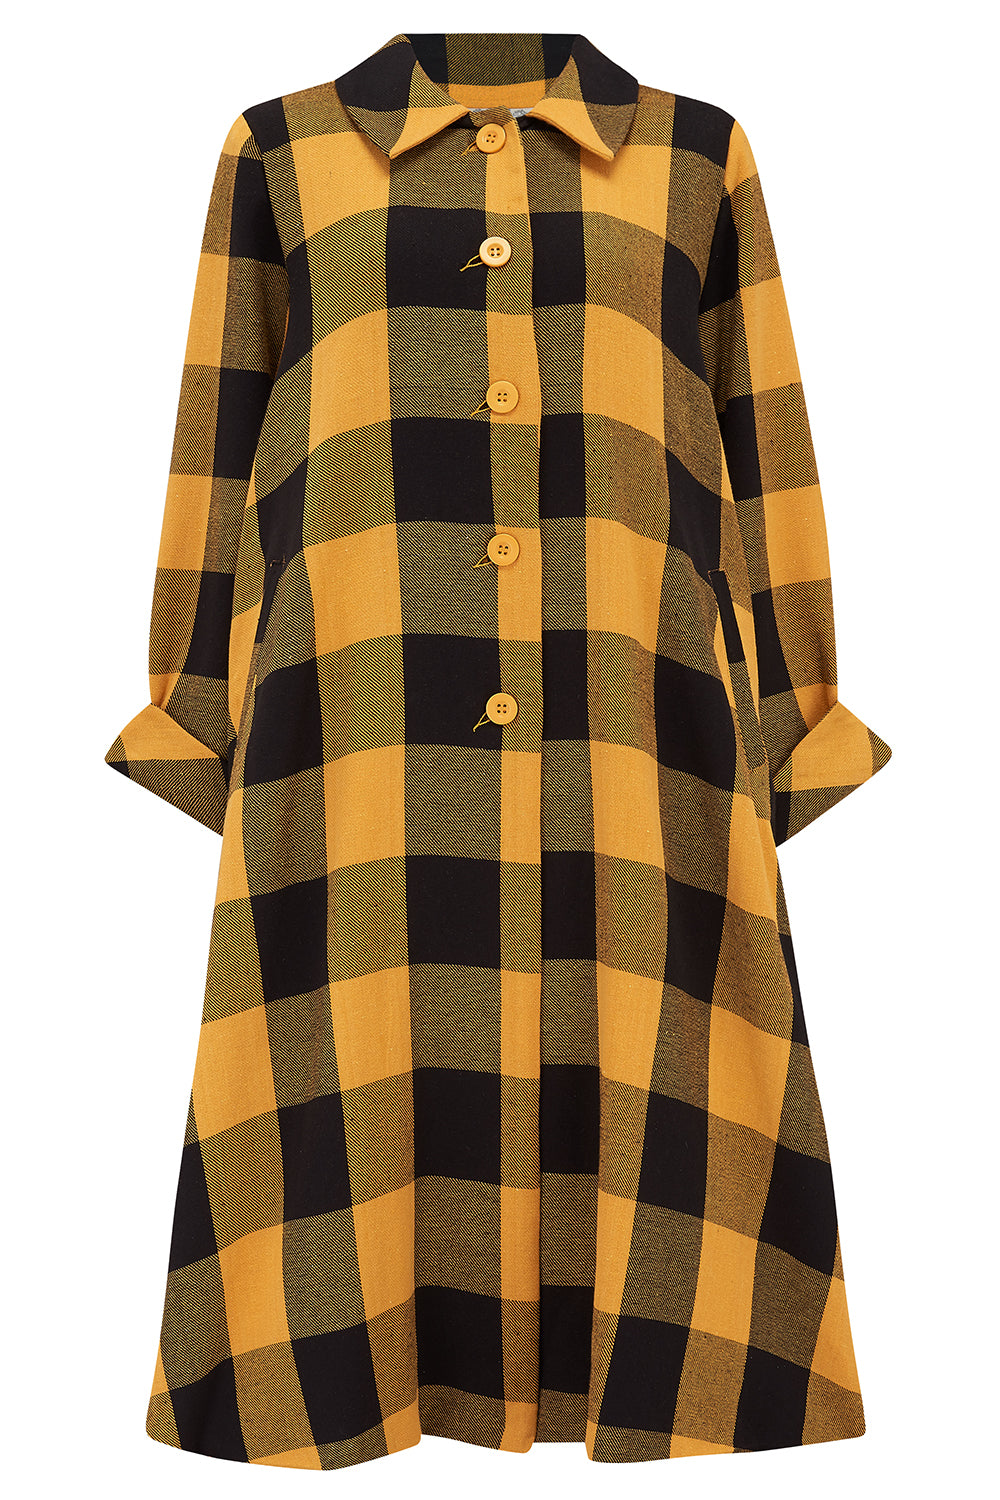 Vintage Coats & Jackets | Retro Coats and Jackets Classic 1940s Swagger Coat in Mustard  Black Check Vintage Cape Style Inspired Over Coat £115.00 AT vintagedancer.com